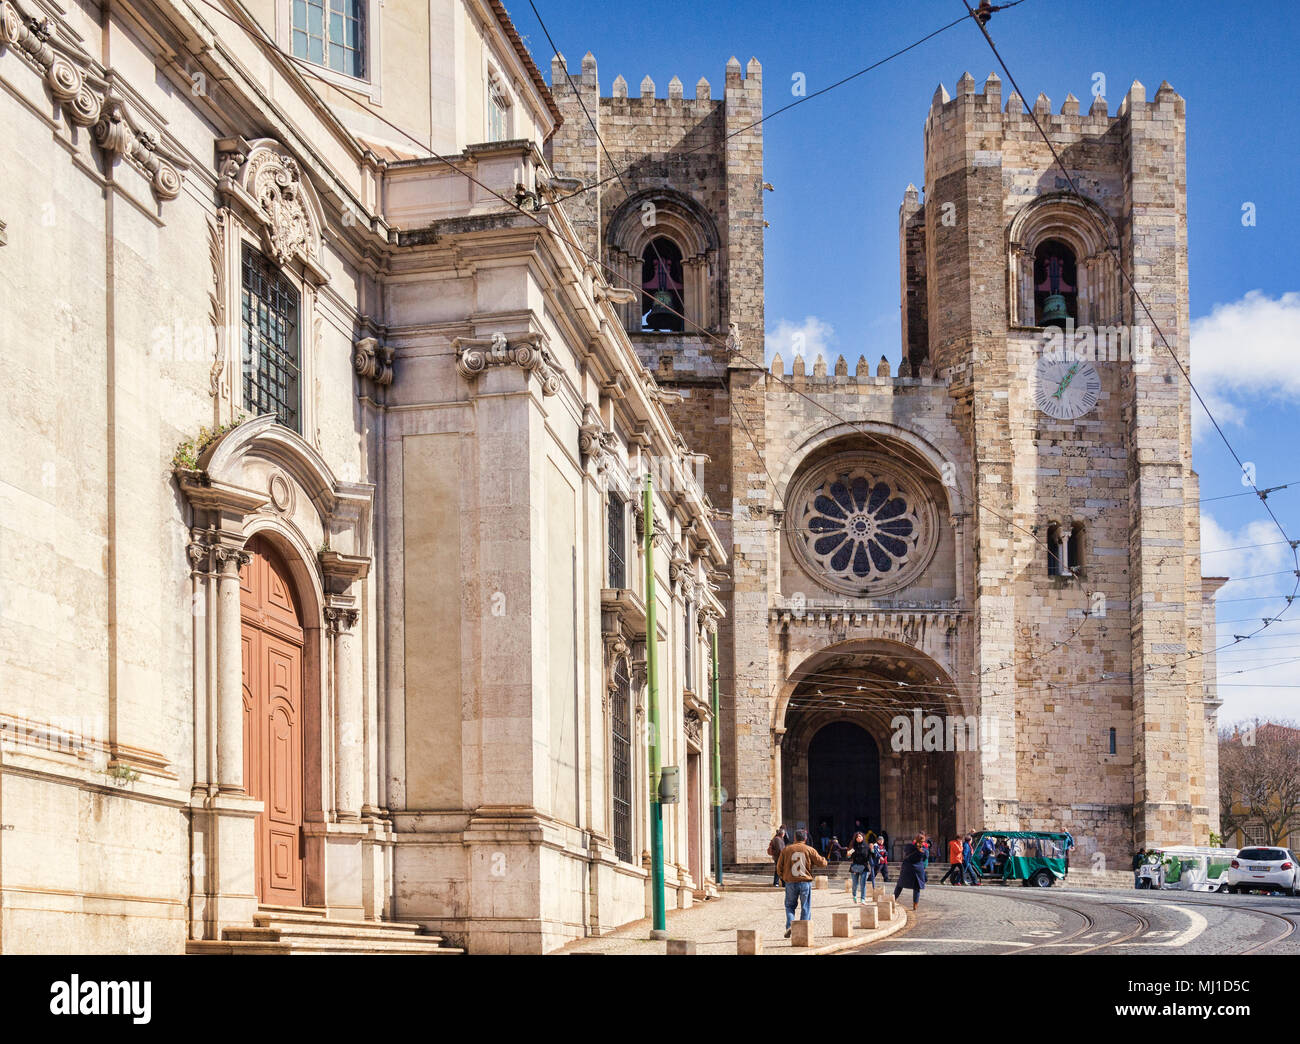 1 March 2018: Lisbon Portugal - The Roman Catholic Cathedral, situated in the Alfama District, the Old Town. - Stock Image